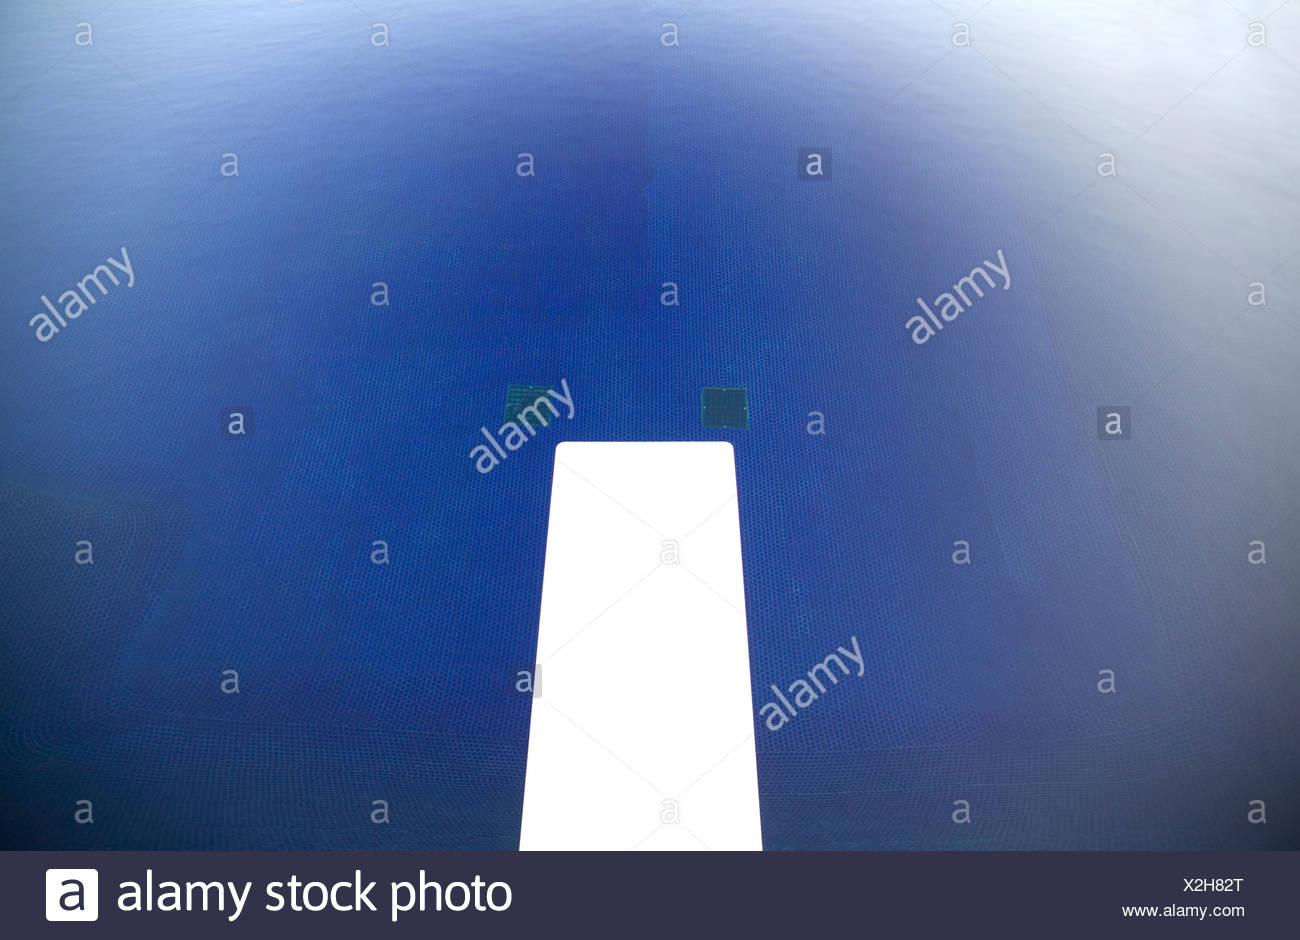 A white diving board above a blue pool, Folsom, California. - Stock Image